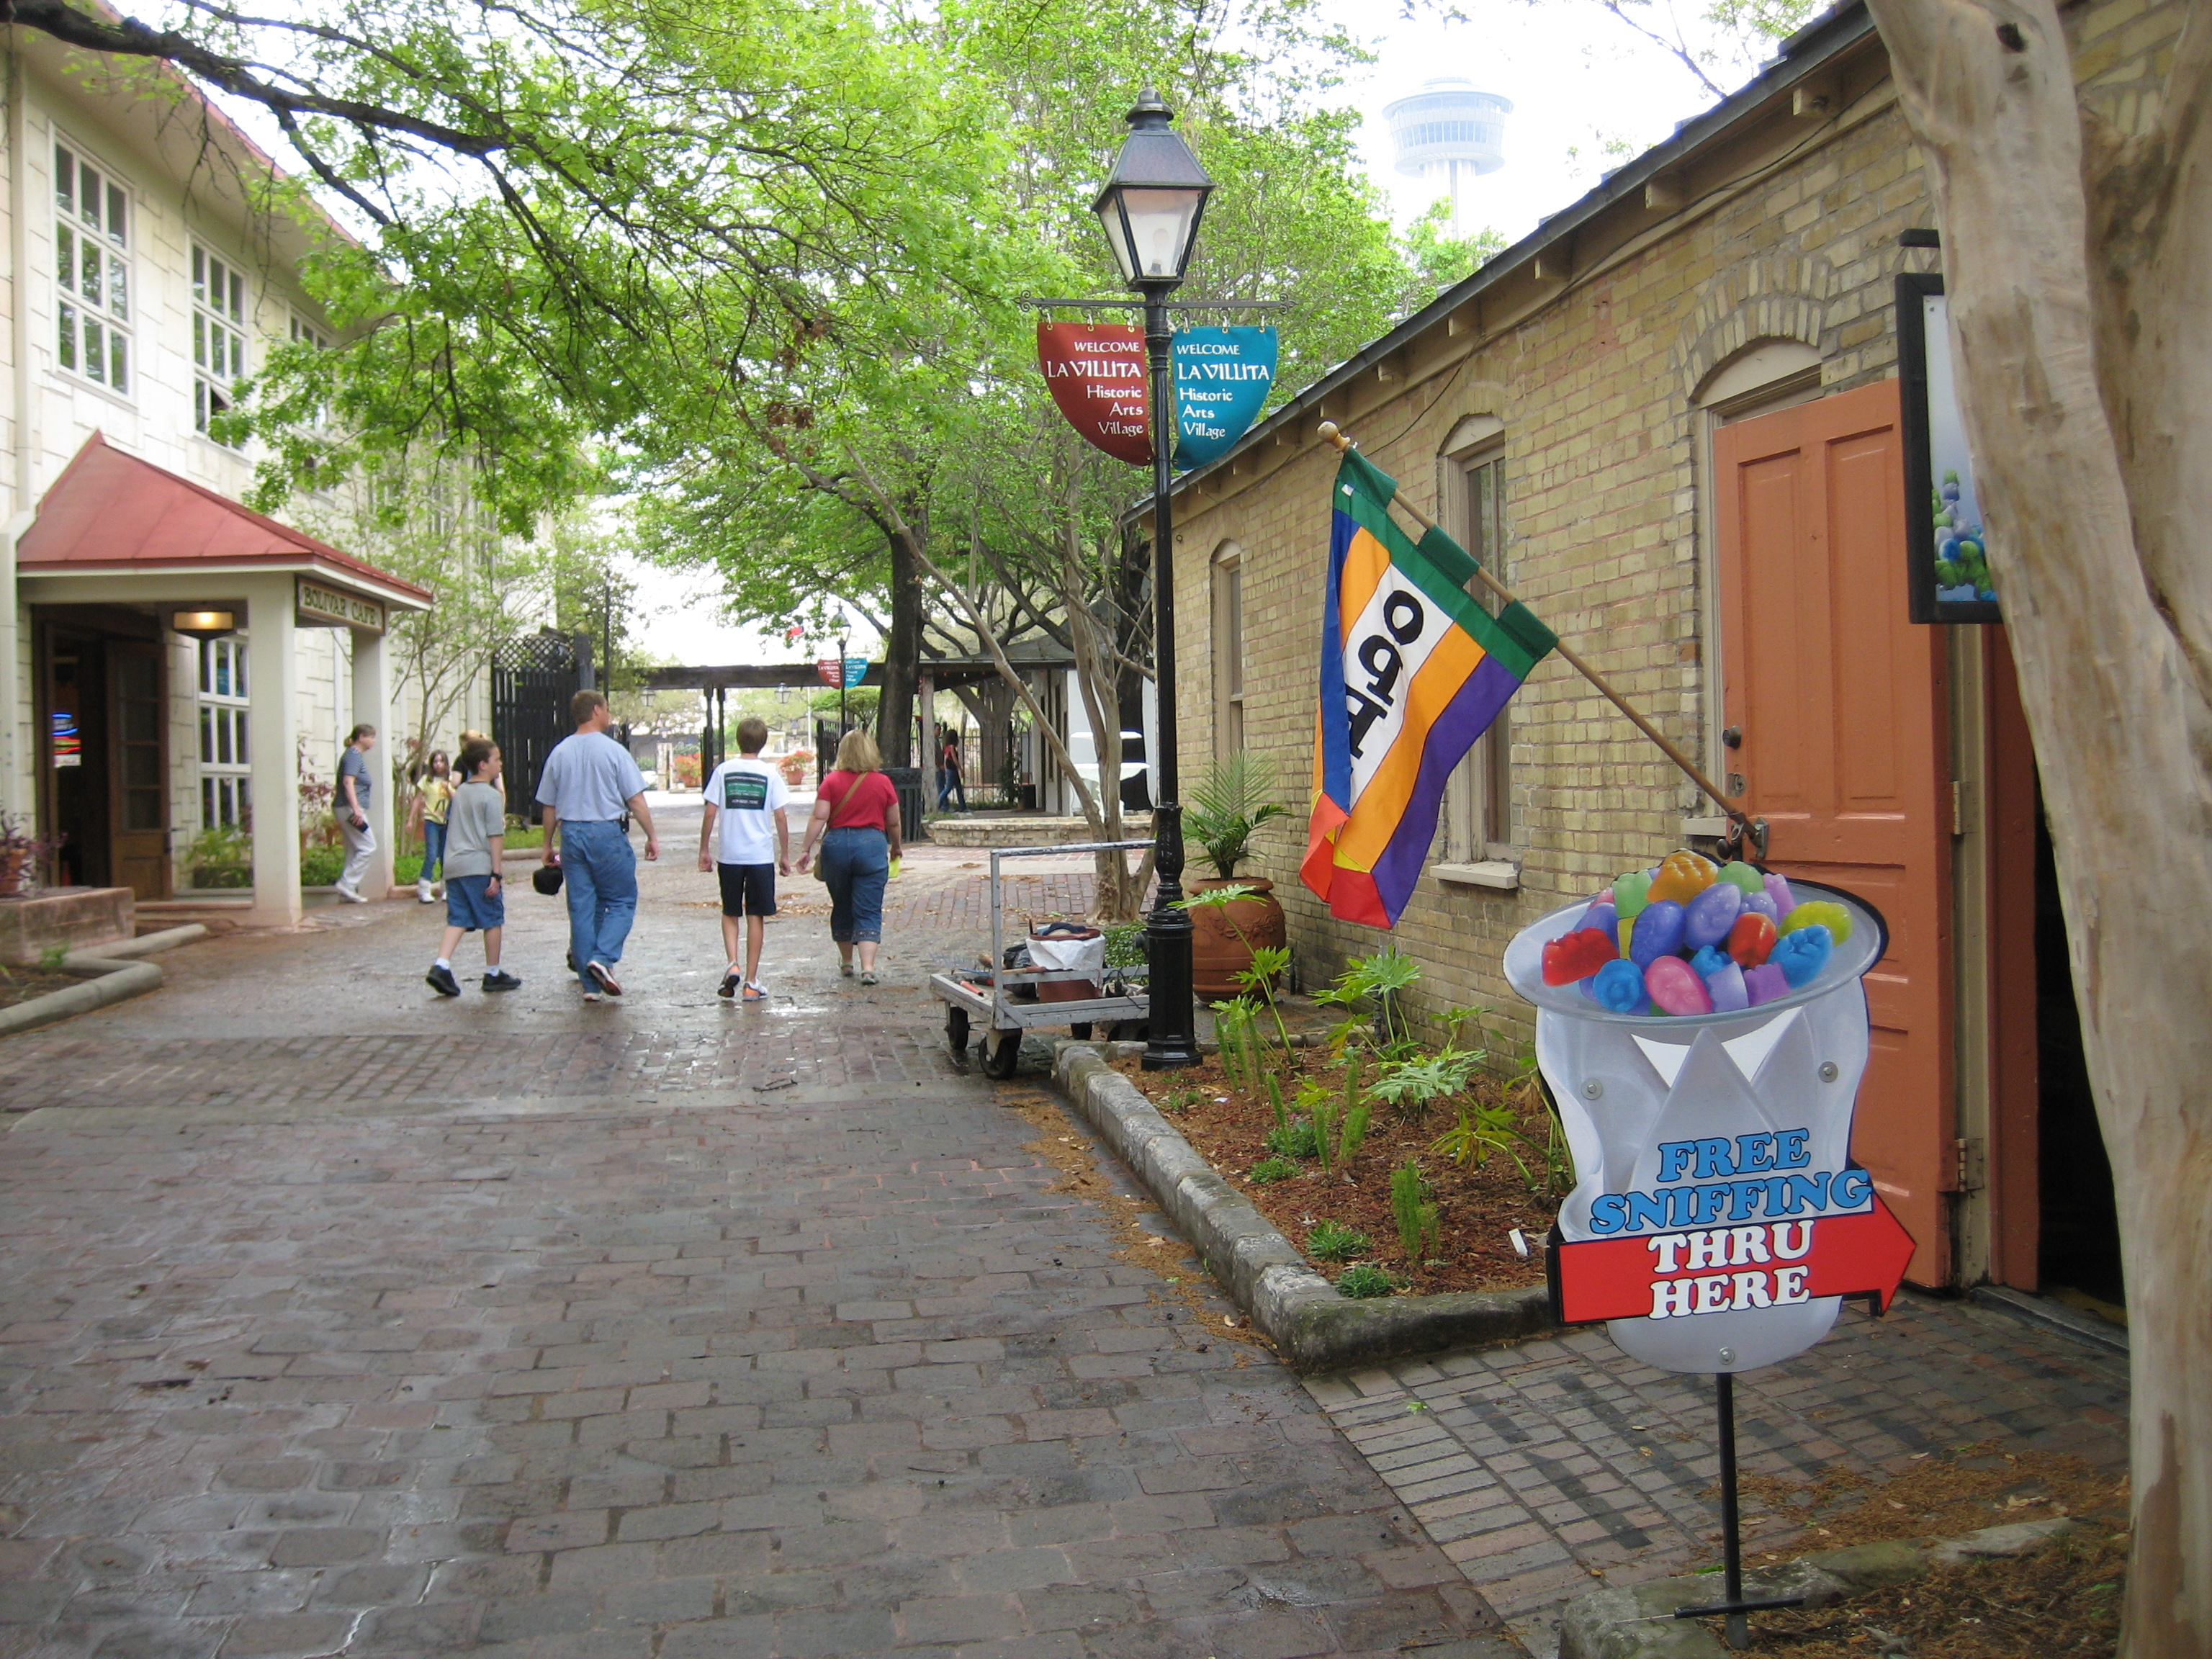 La Villita reflects the many cultures that have impacted San Antonio